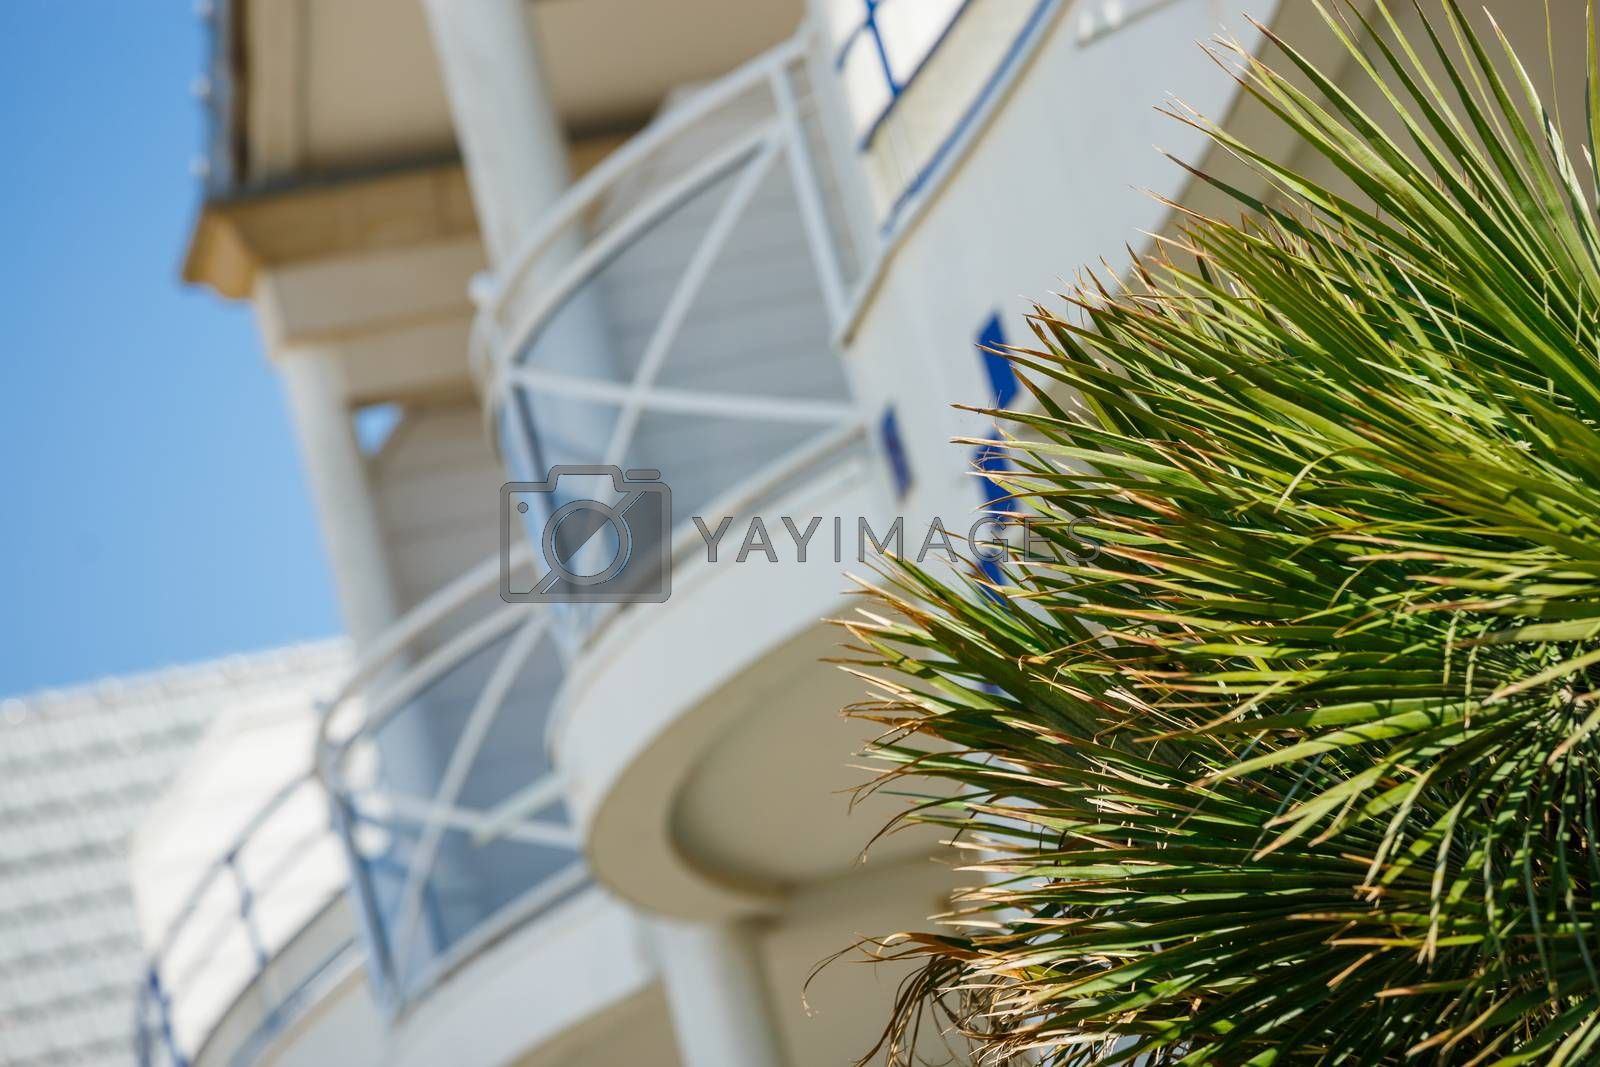 Royalty free image of Modern apartment buildings exteriors in sunny day by pixinoo